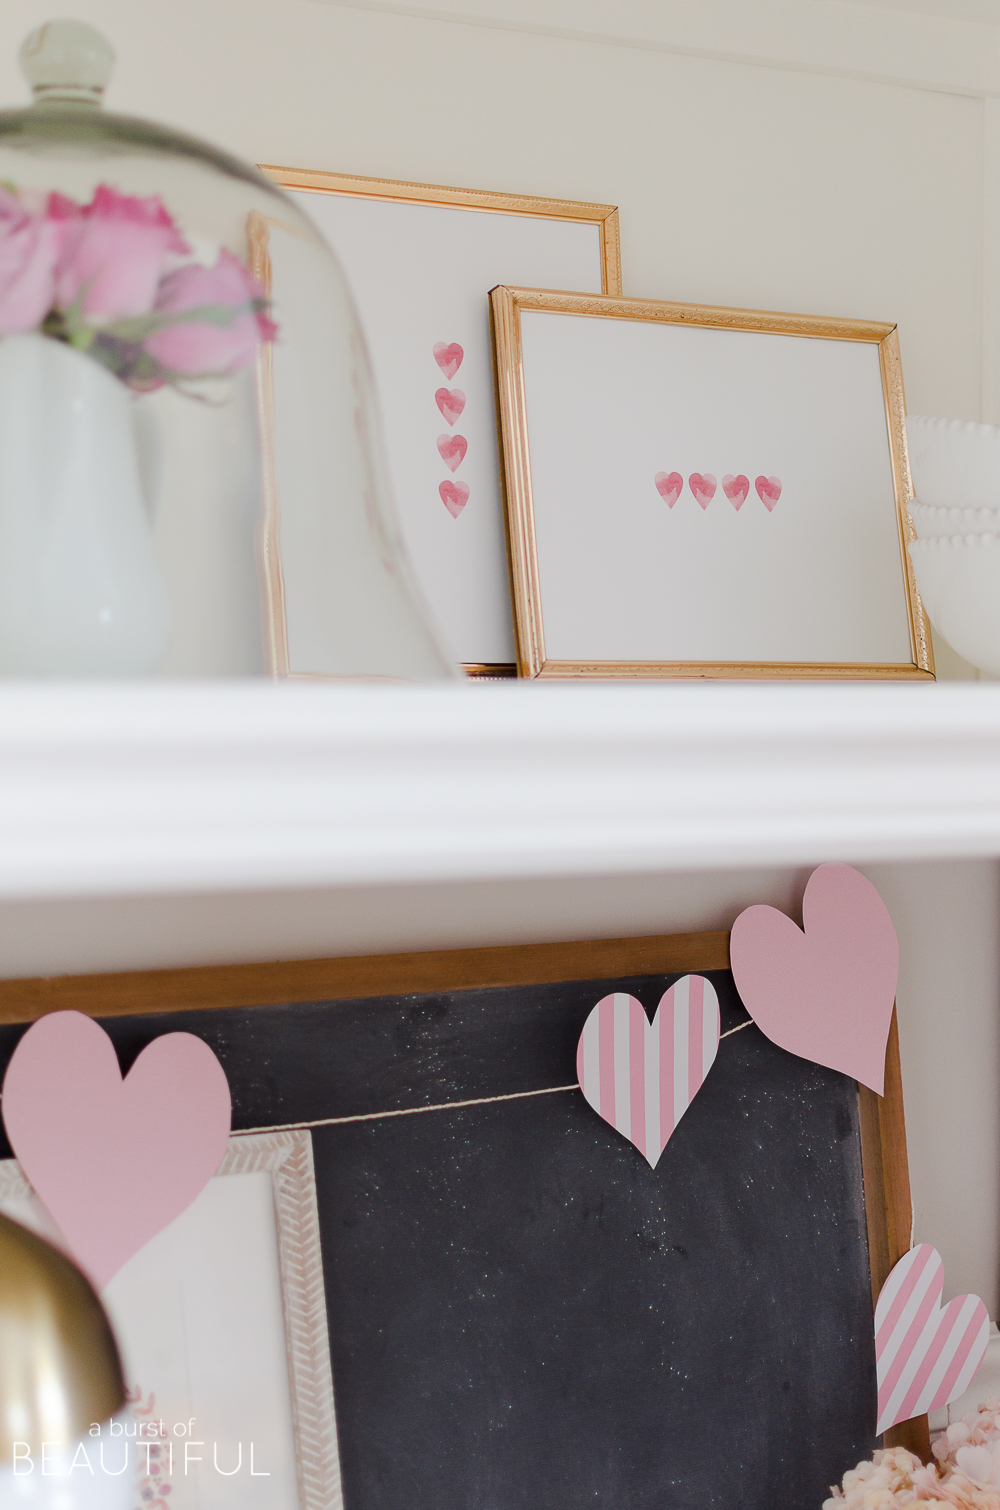 Decorate your home for Valentine's Day with these simple Valentine's Day decor ideas, including two free printables